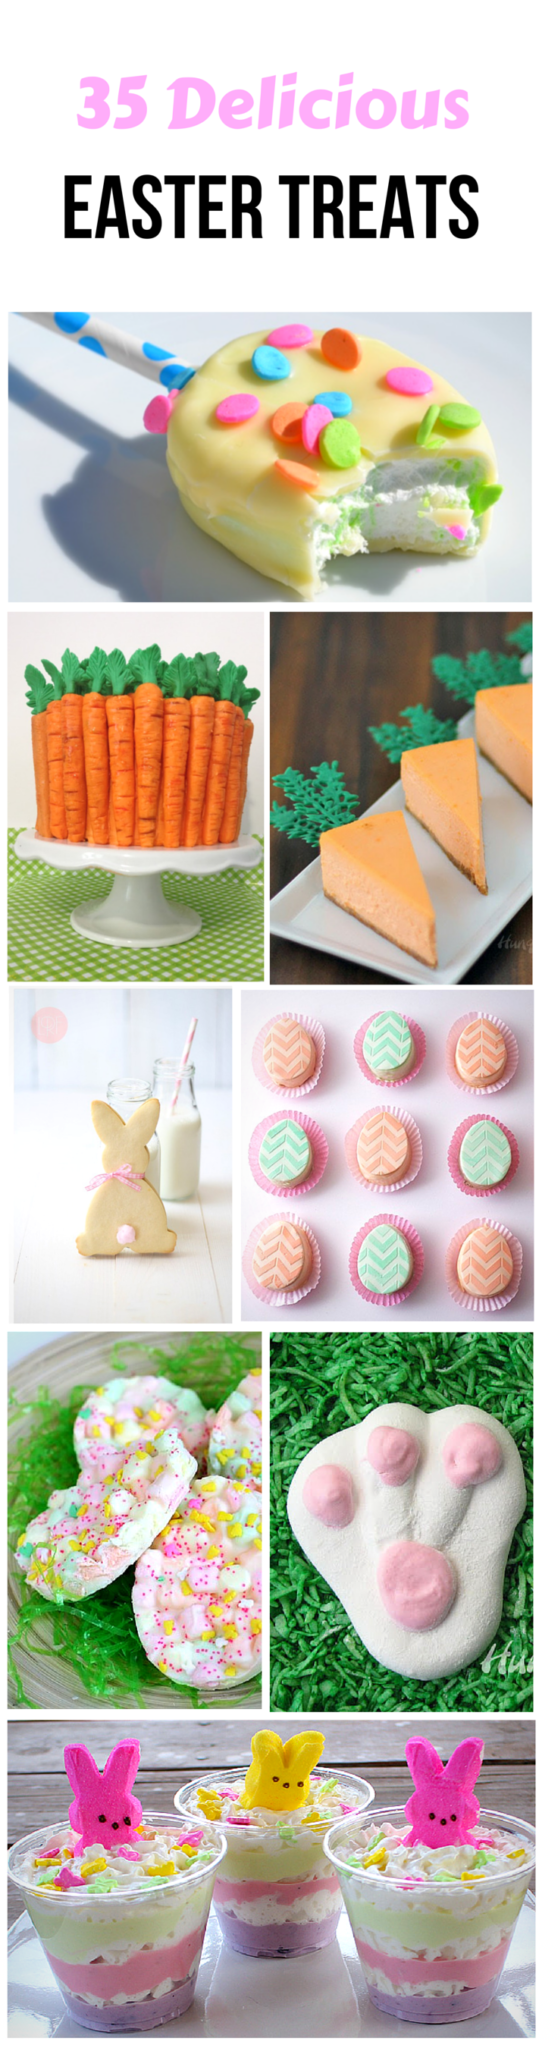 Easter Treats are delicious and make the holiday more fun!  Decorate your table with these brightly colored Easter treats for all ages. via @amybarseghian